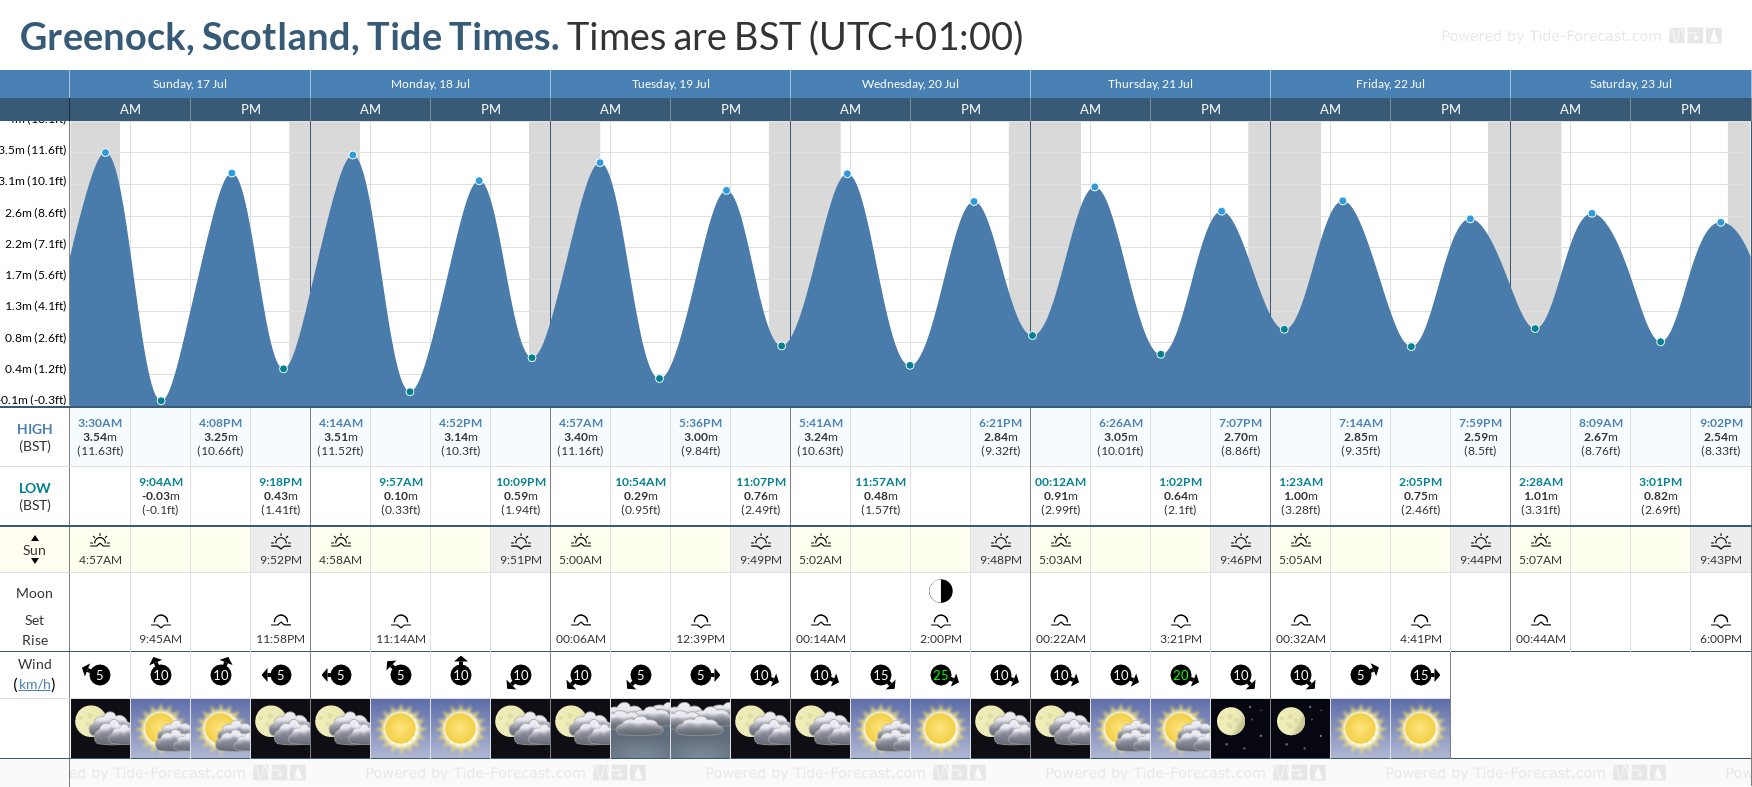 Greenock, Scotland Tide Chart including high and low tide tide times for the next 7 days